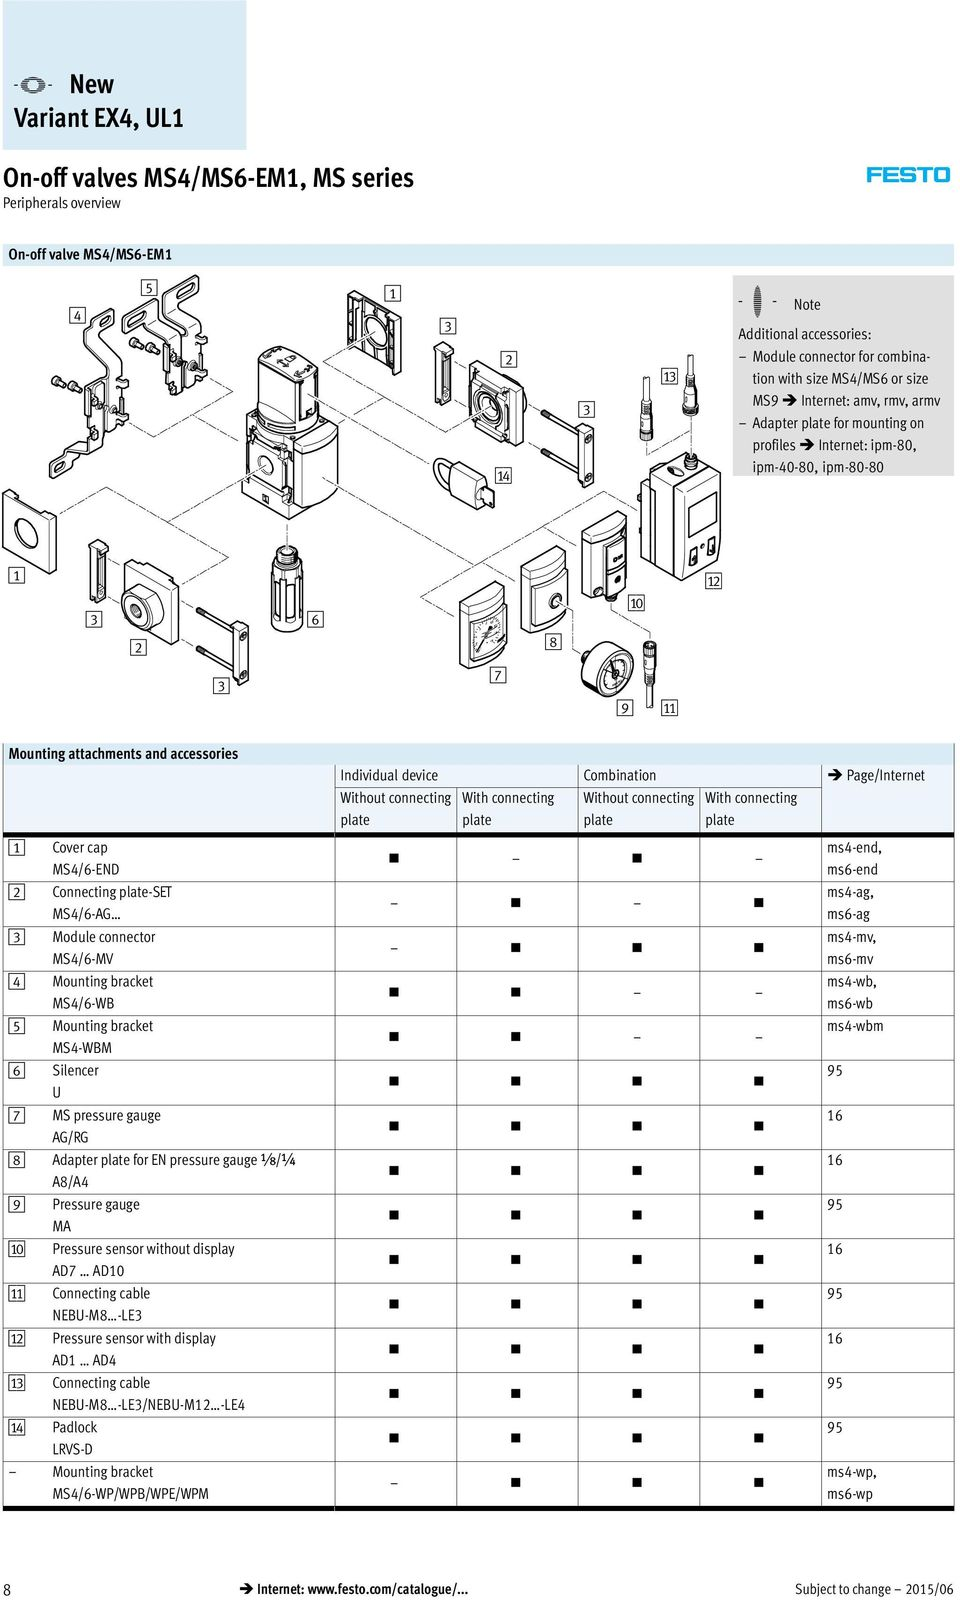 device Combination Page/Internet Without connecting plate With connecting plate Without connecting plate With connecting plate 1 Cover cap MS4/6-END 2 Connecting plate-set MS4/6-AG 3 Module connector